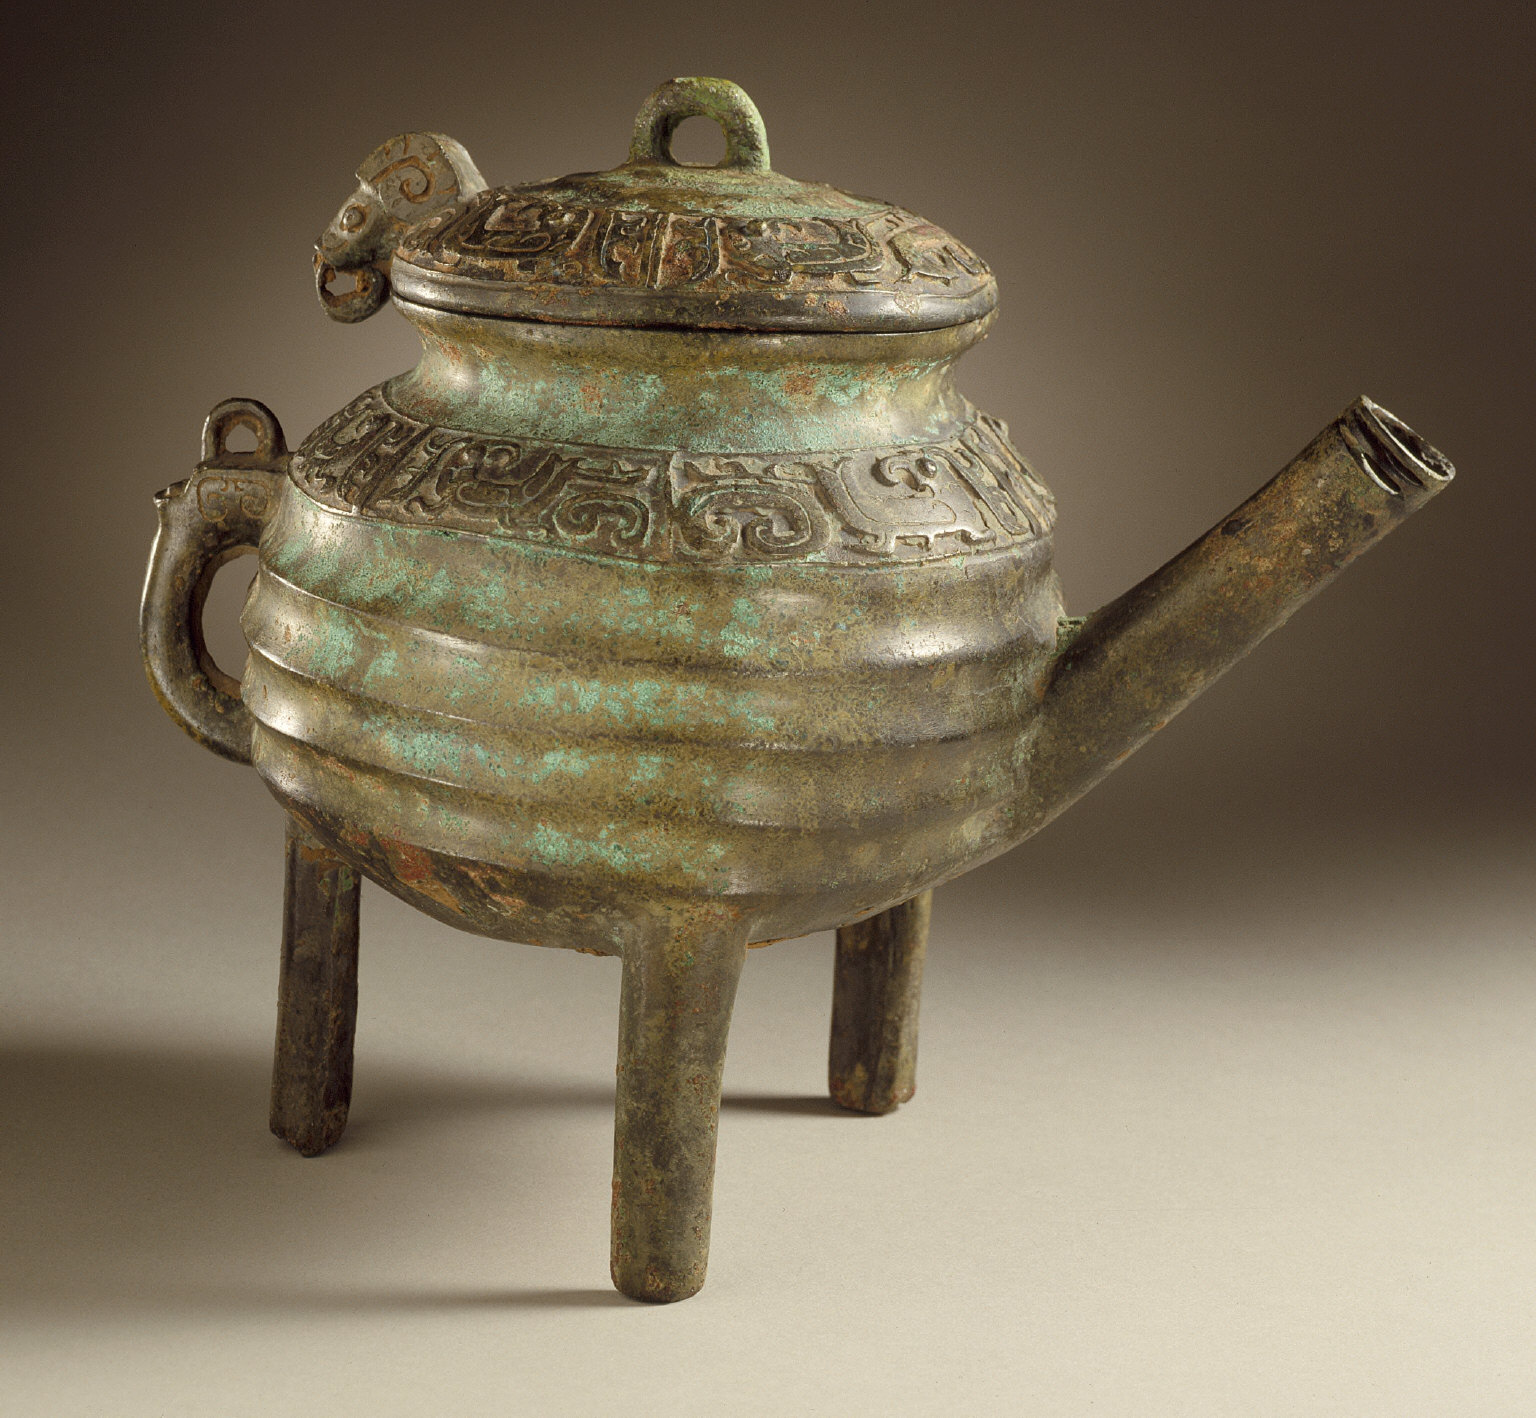 Lidded Ritual Pitcher (He) with Birds